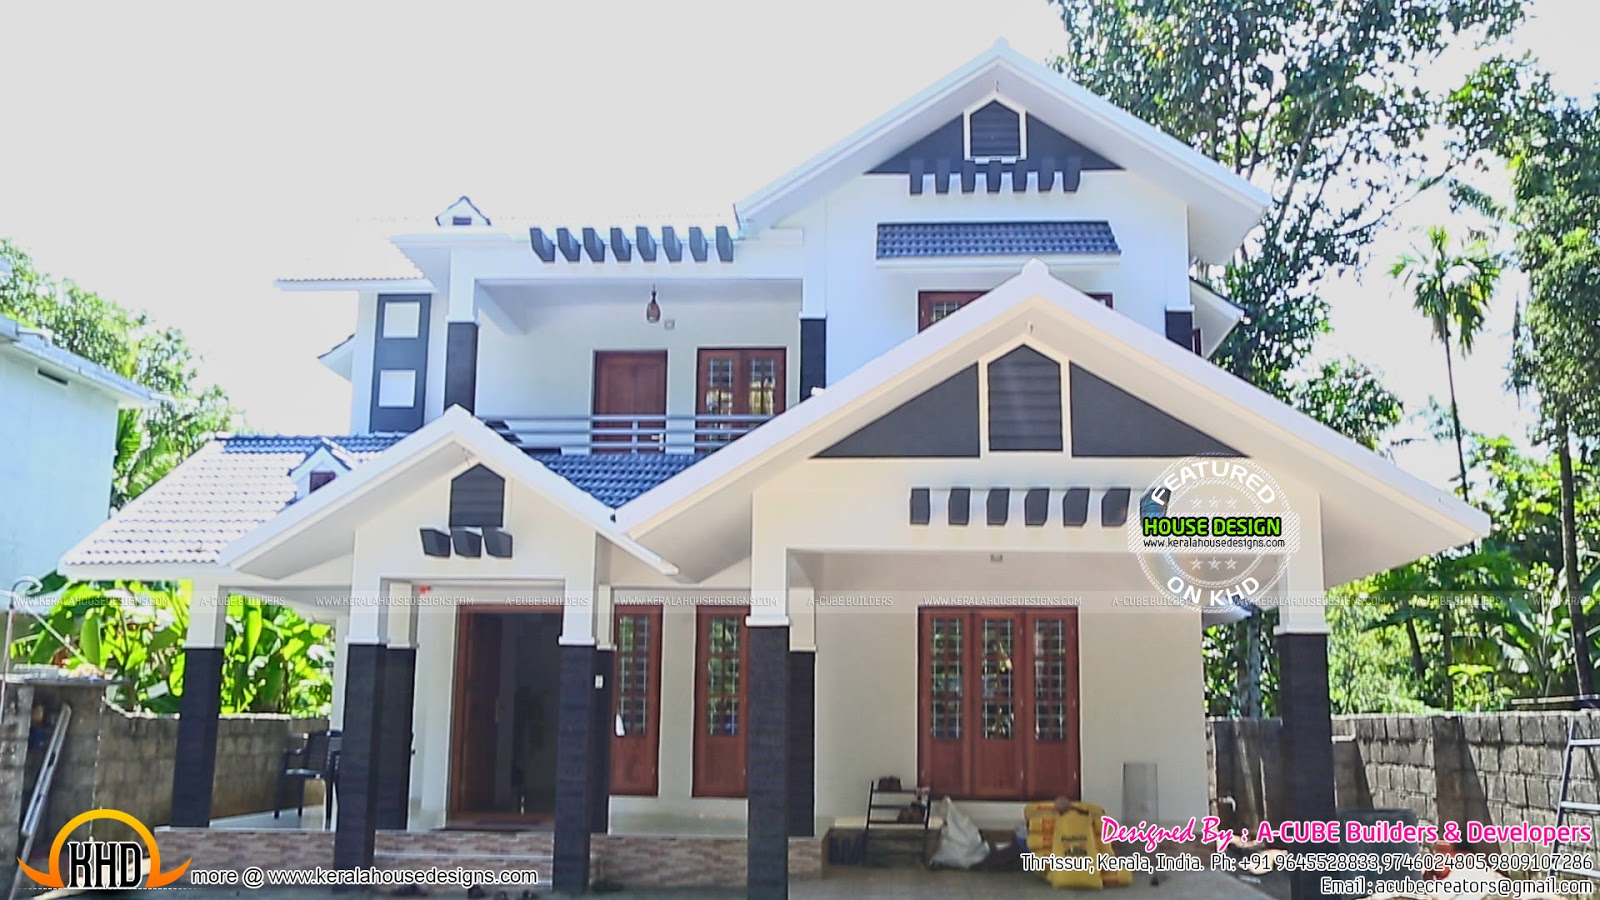 New house plans for 2016 starts here kerala home design for House plans and designs